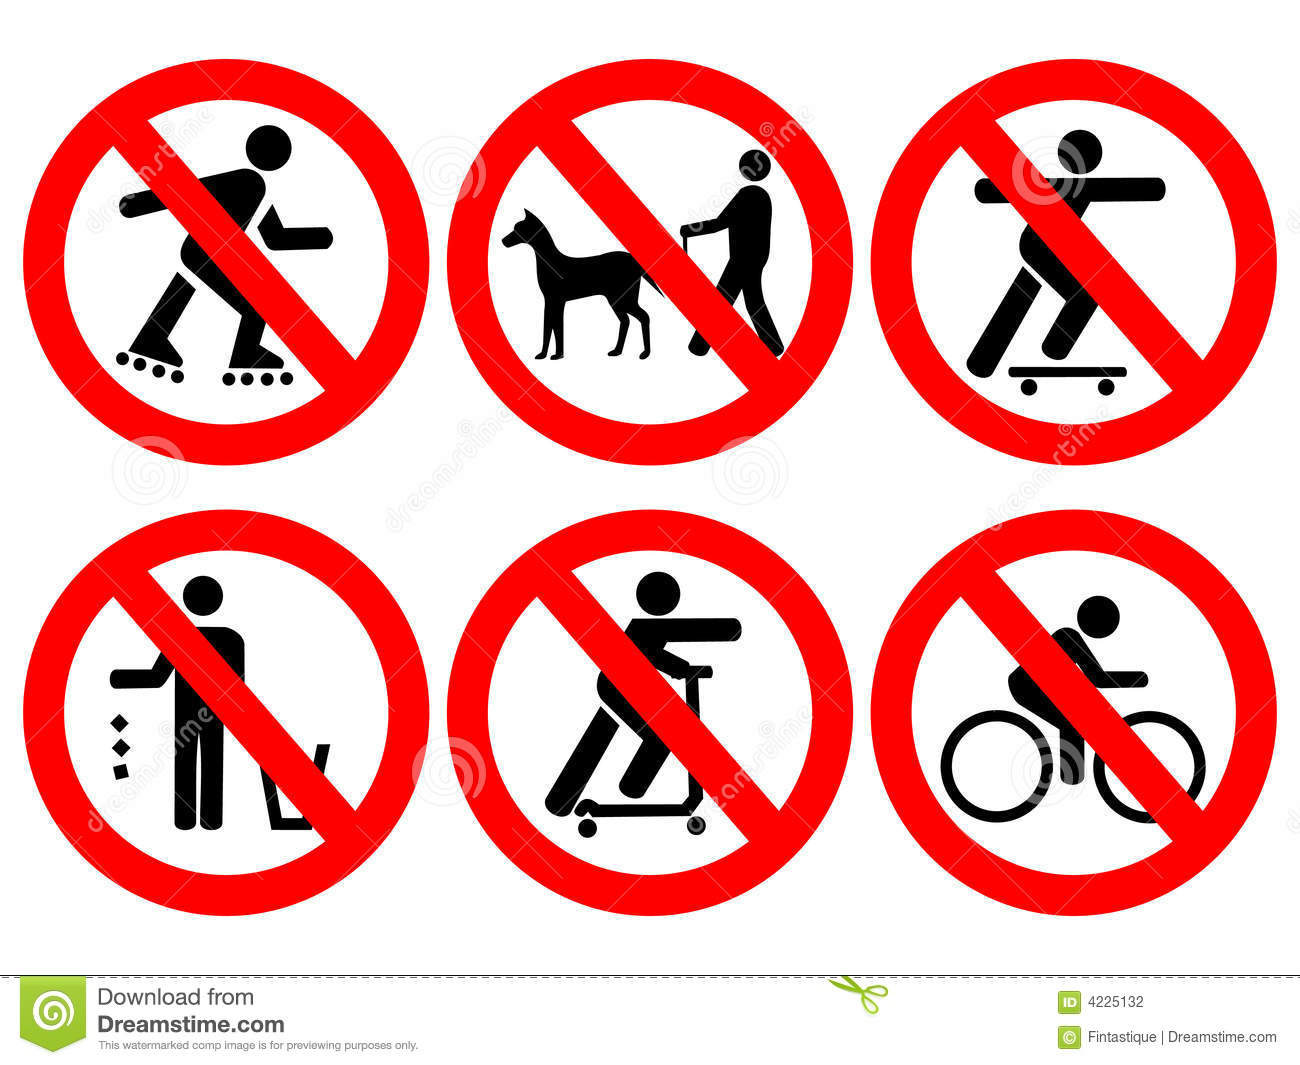 park rules signs stock vector illustration of container 4225132 figure skating clip art figure skating clip art to download for free